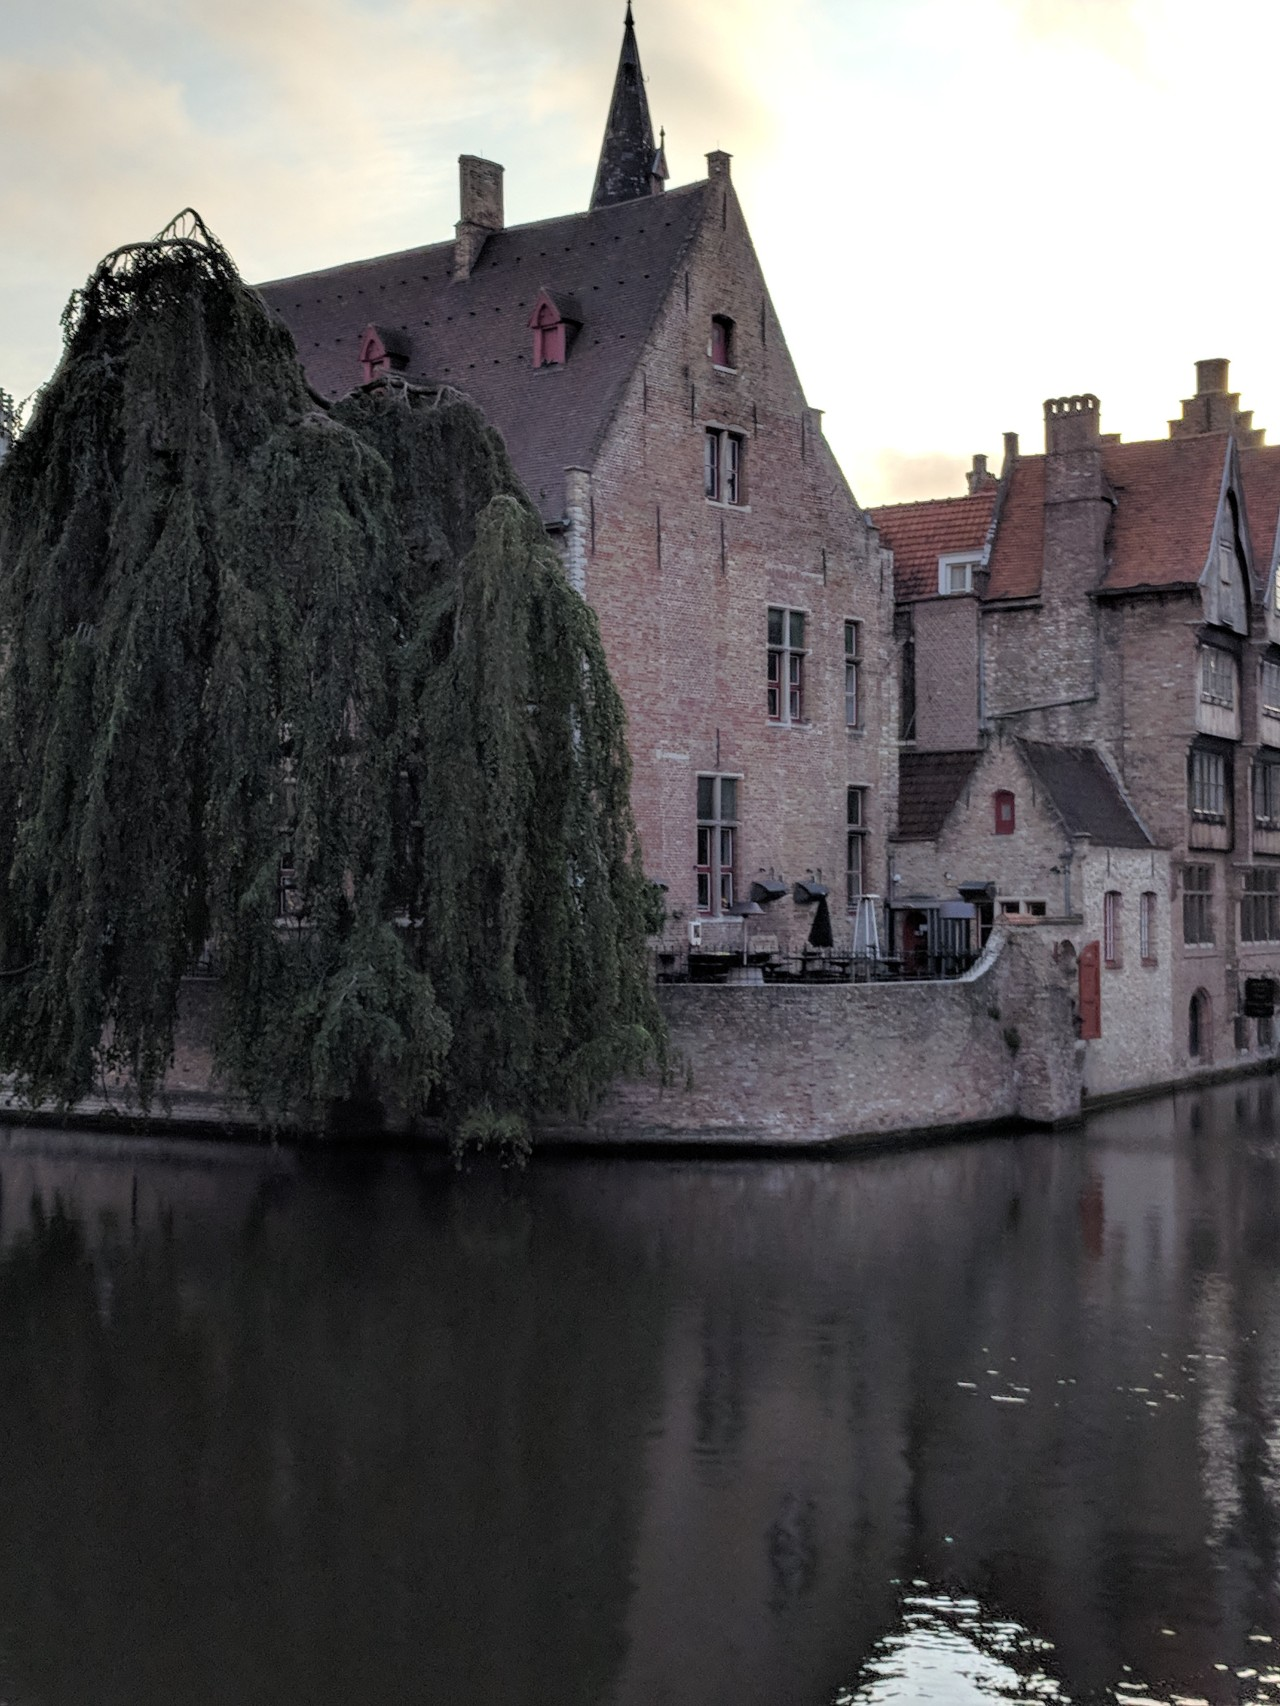 Day 16: The Beauty of Brugge